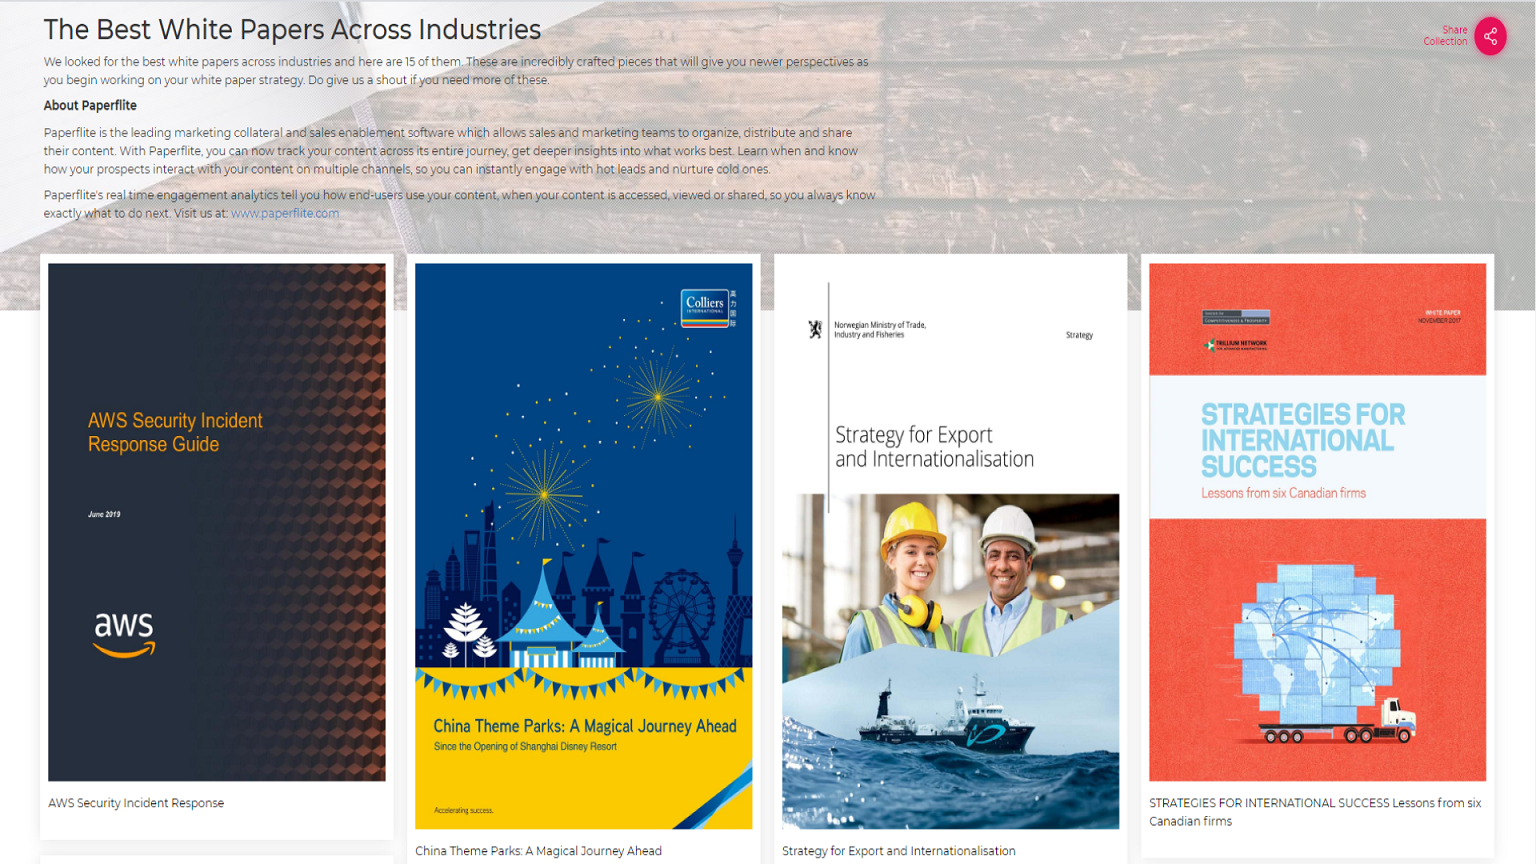 The Best White Papers Across Industries